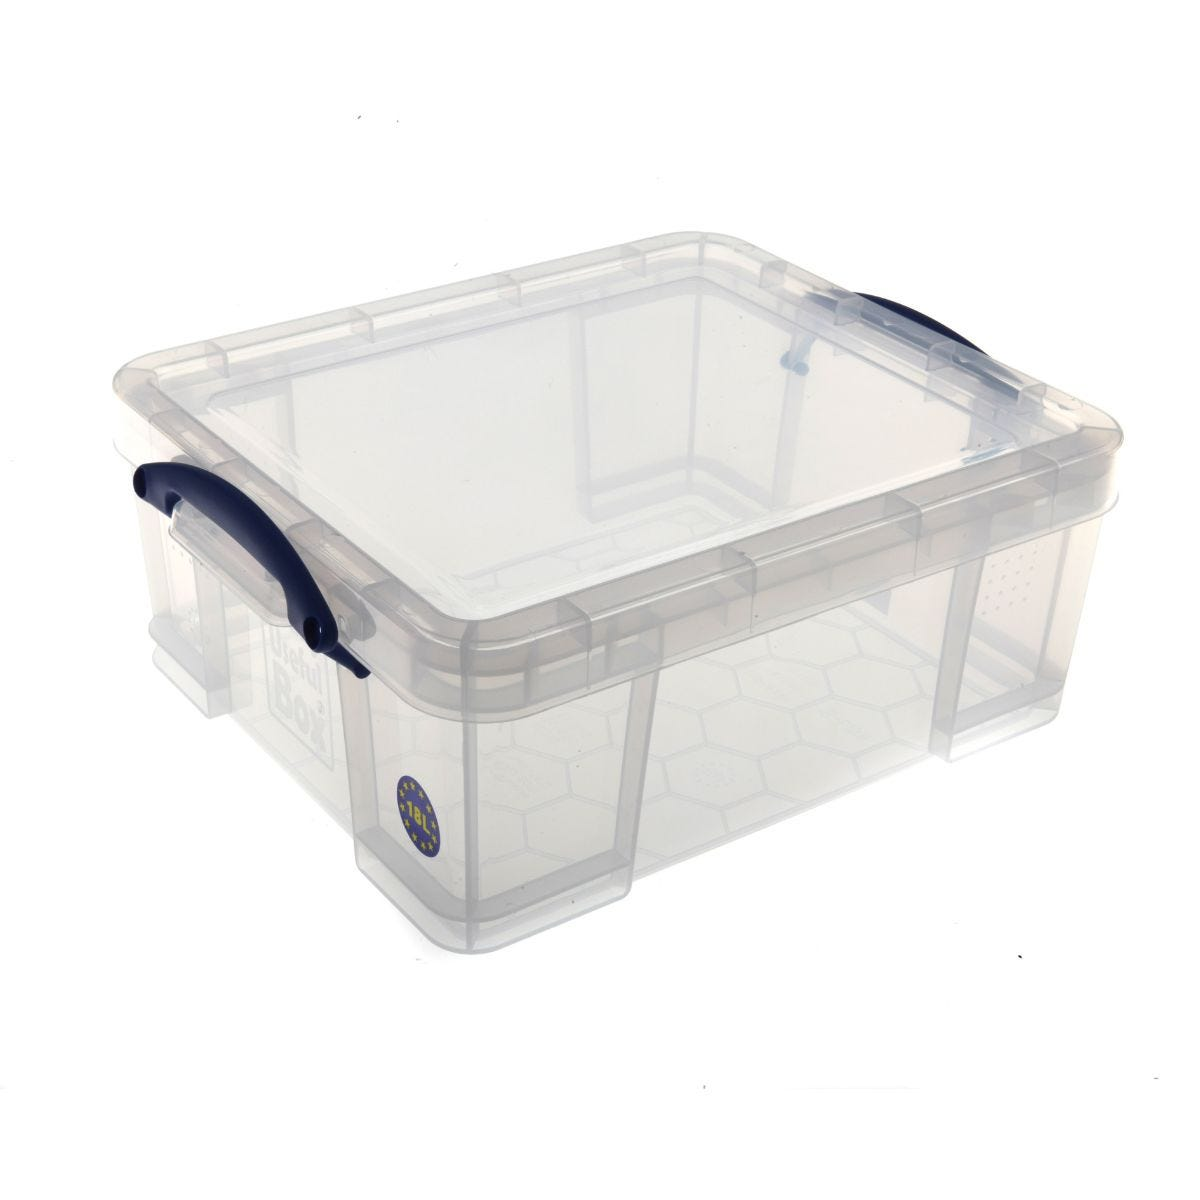 Buy Plastic Boxes Plastic Storage Boxes Ryman